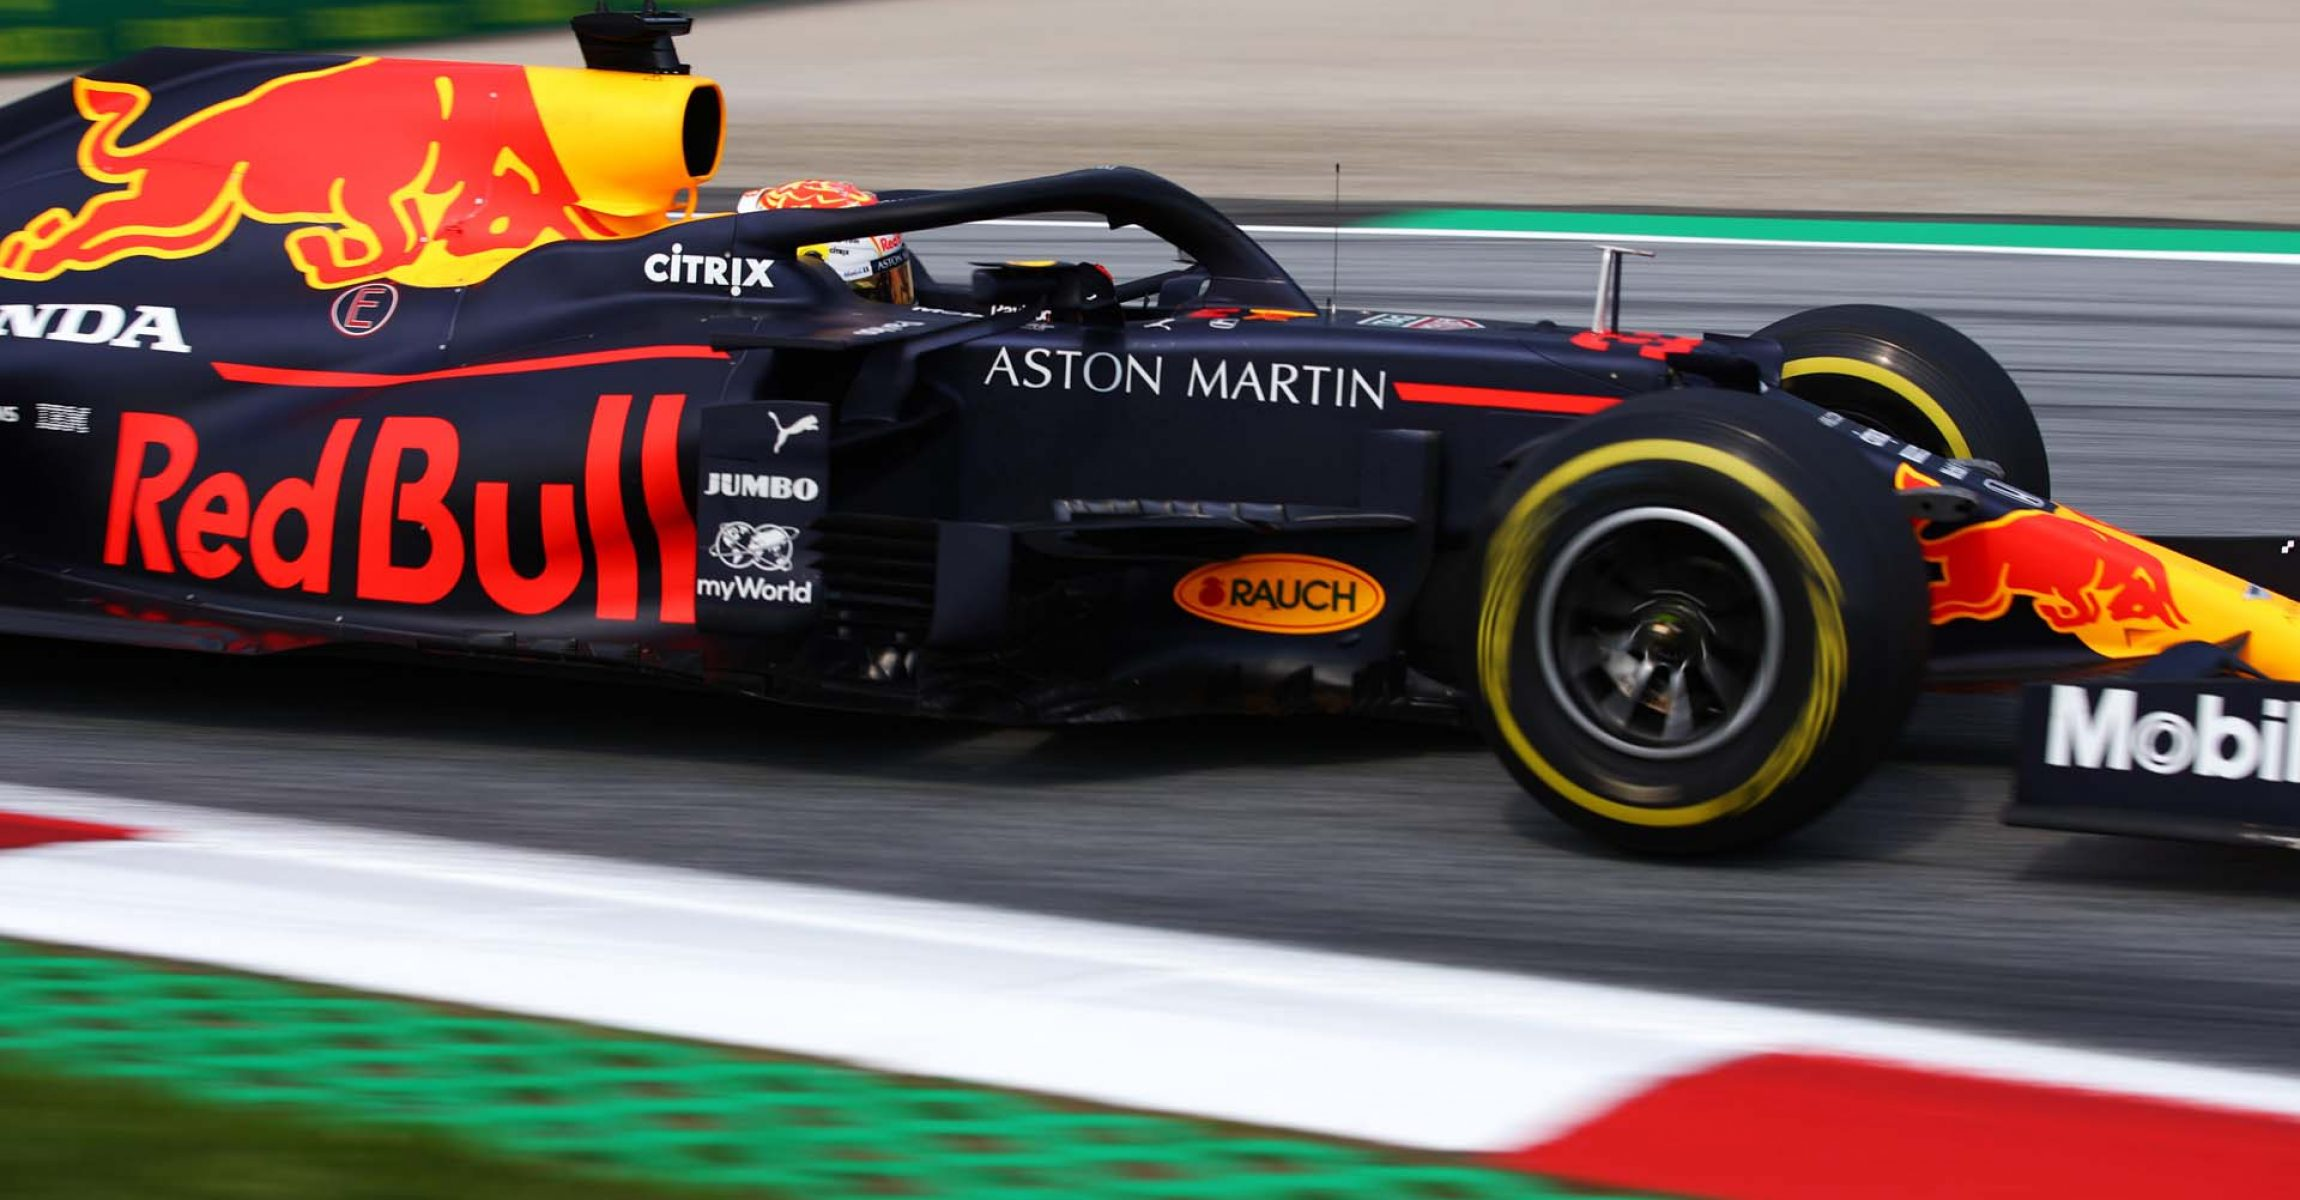 SPIELBERG, AUSTRIA - JULY 10: Max Verstappen of the Netherlands driving the (33) Aston Martin Red Bull Racing RB16 on track during practice for the F1 Grand Prix of Styria at Red Bull Ring on July 10, 2020 in Spielberg, Austria. (Photo by Bryn Lennon/Getty Images) // Getty Images / Red Bull Content Pool // AP-24KAPBZP92111 // Usage for editorial use only //